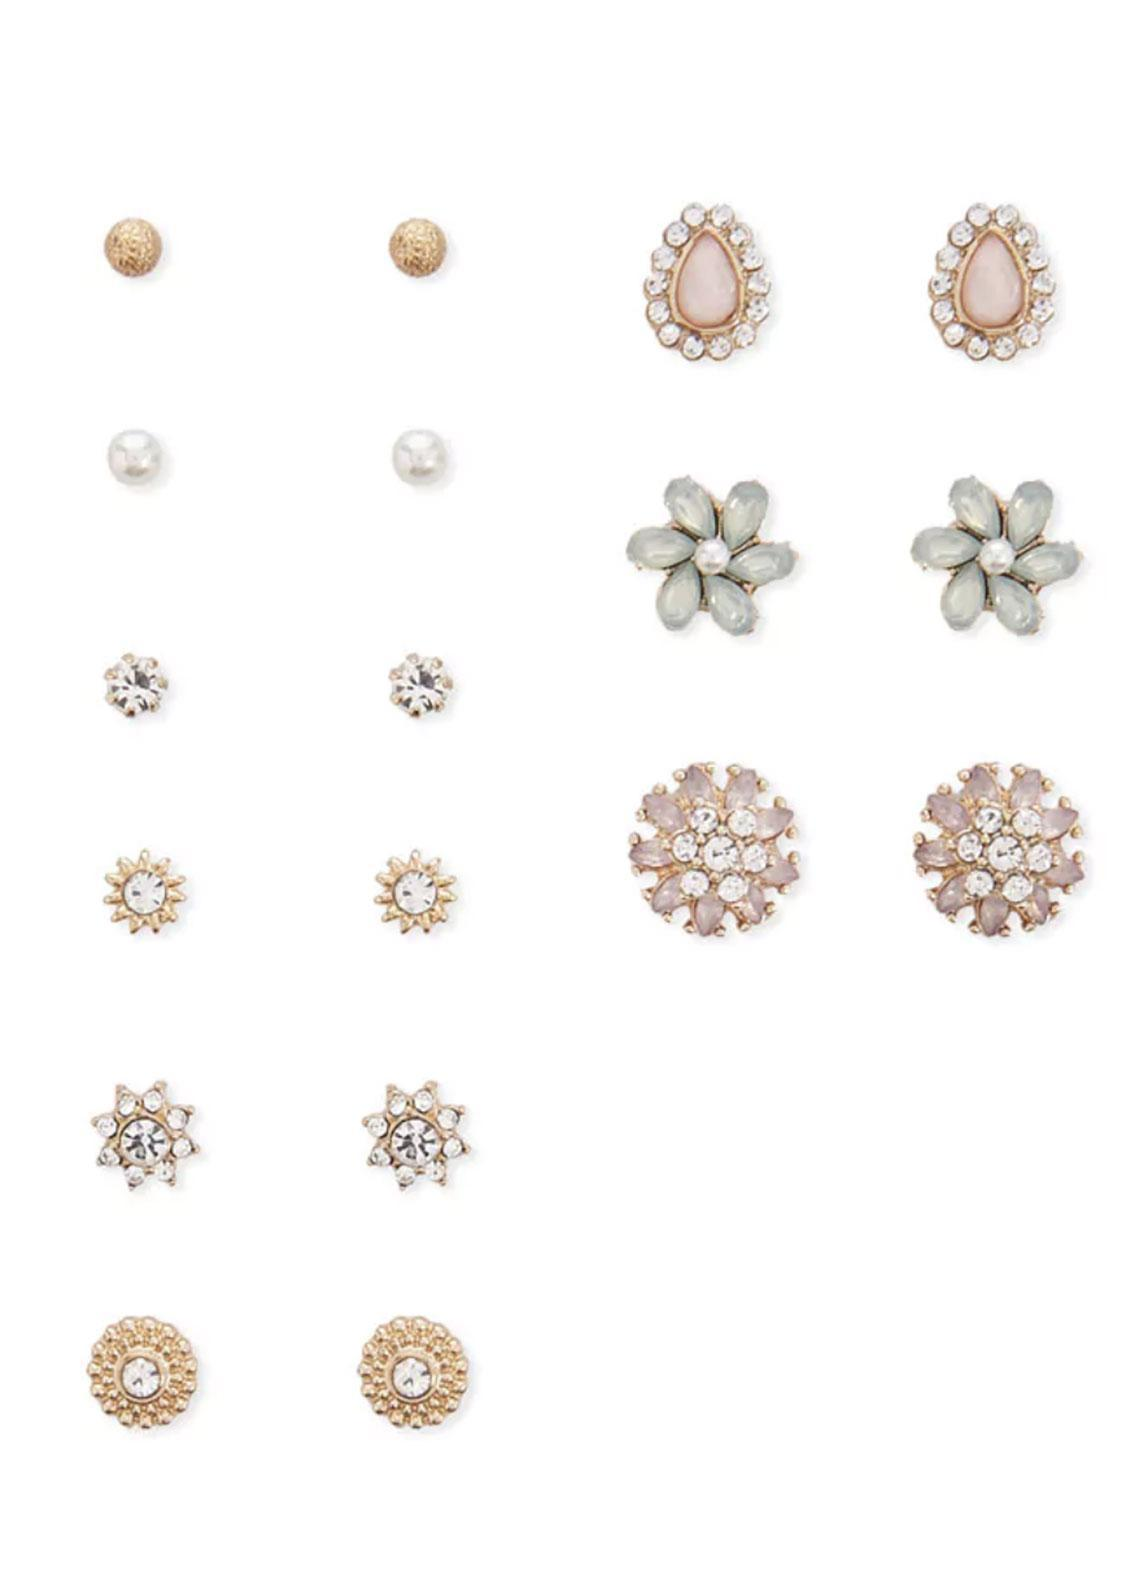 Forever21 Assorted  Stud Earring Set  - Ladies Jewellery